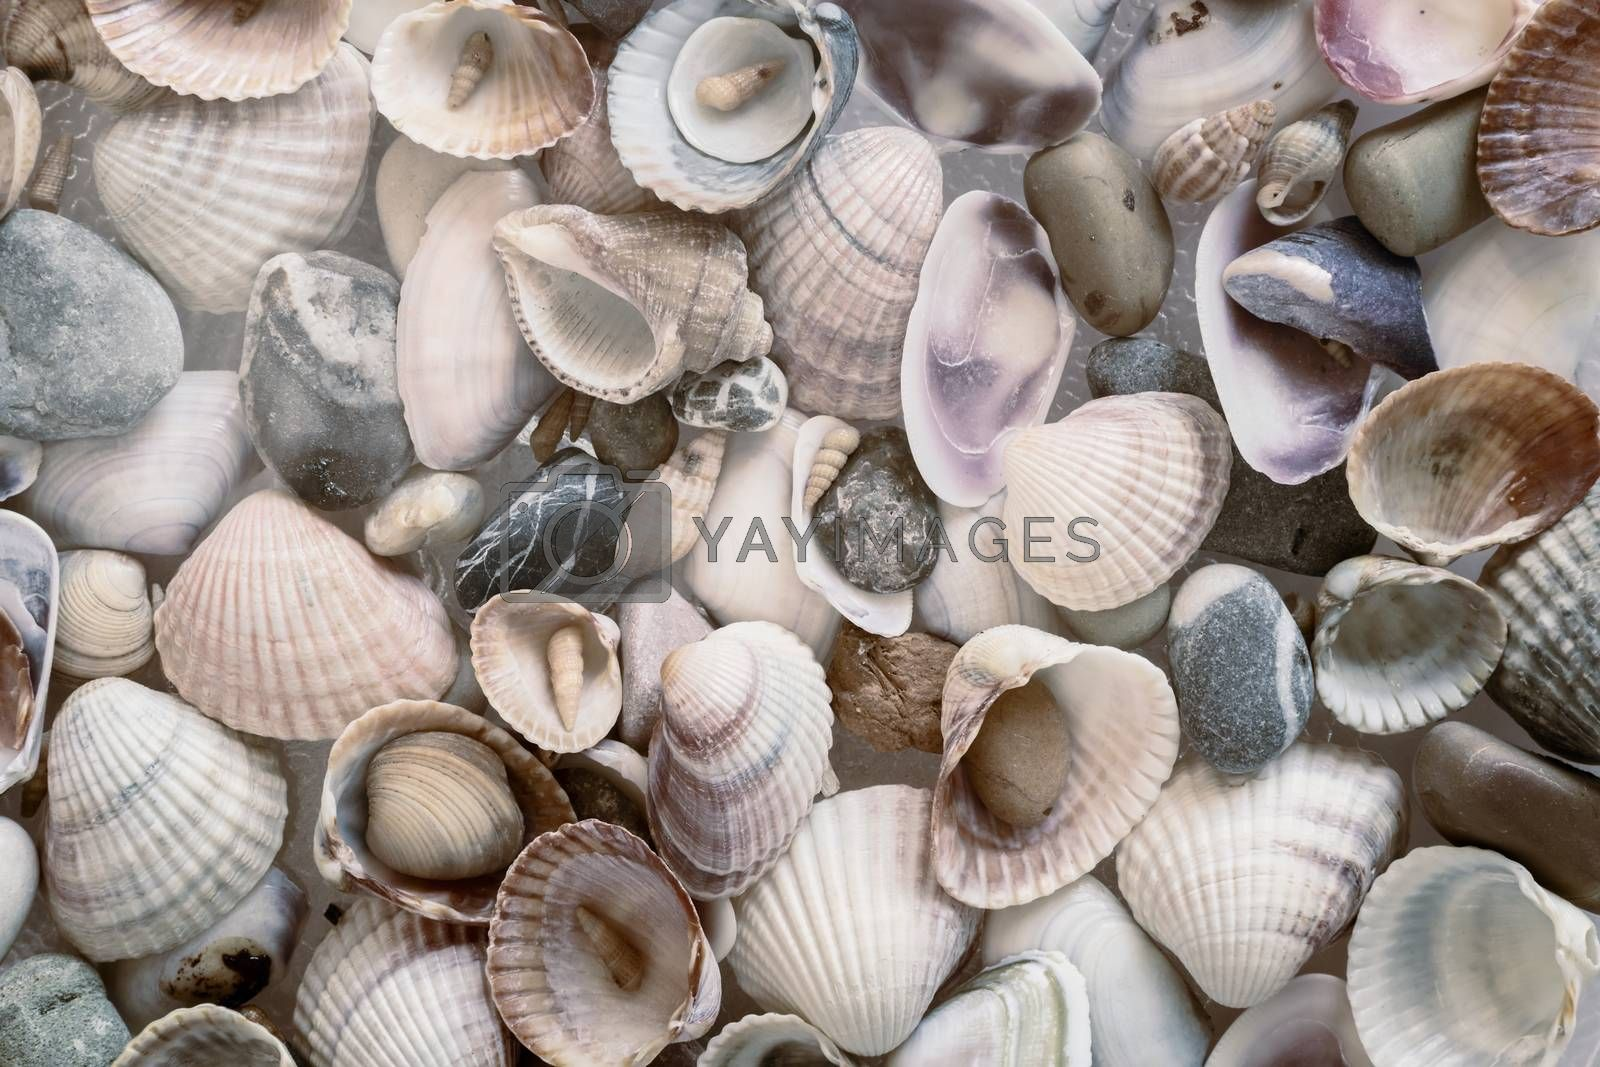 Small seashells of various shapes and colors along with sea pebbles. Background image, nature concept. Presented in close-up.